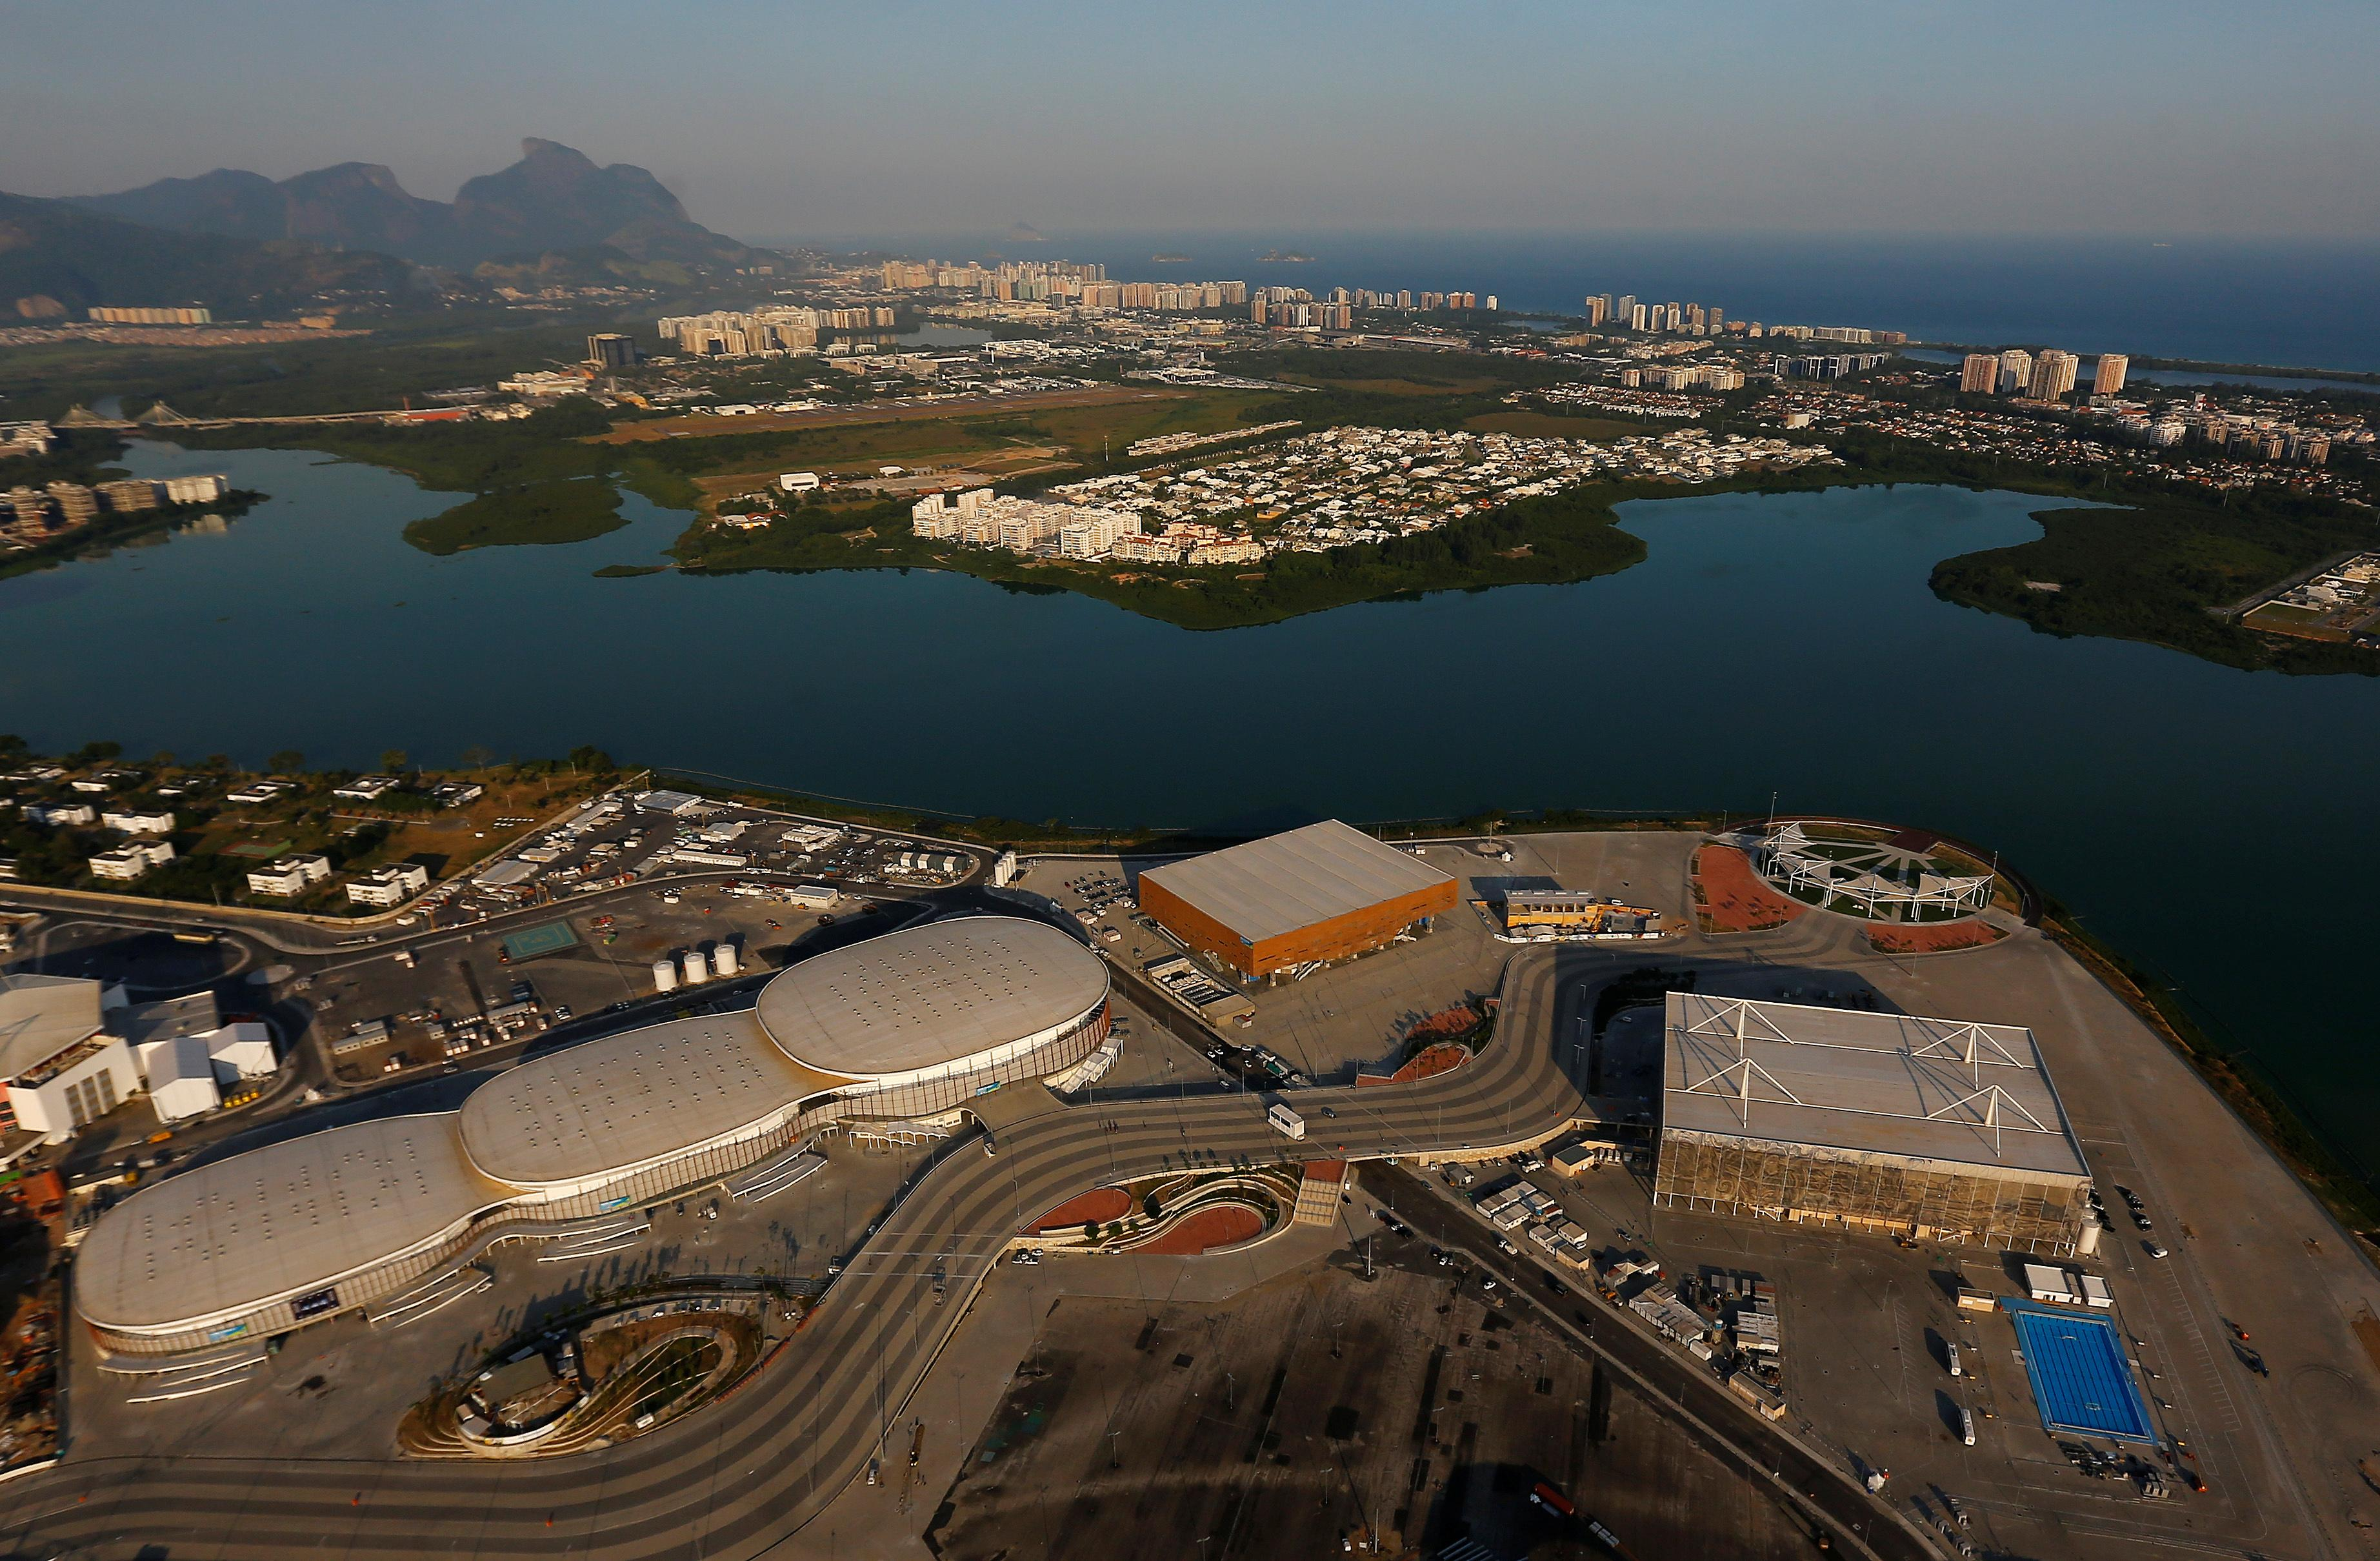 Researchers at the University of Utah plan to study up to 2,000 members of the U.S. Olympic Committee's Rio-bound cohort of athletes, coaches and staff in order to learn more about the Zika virus.